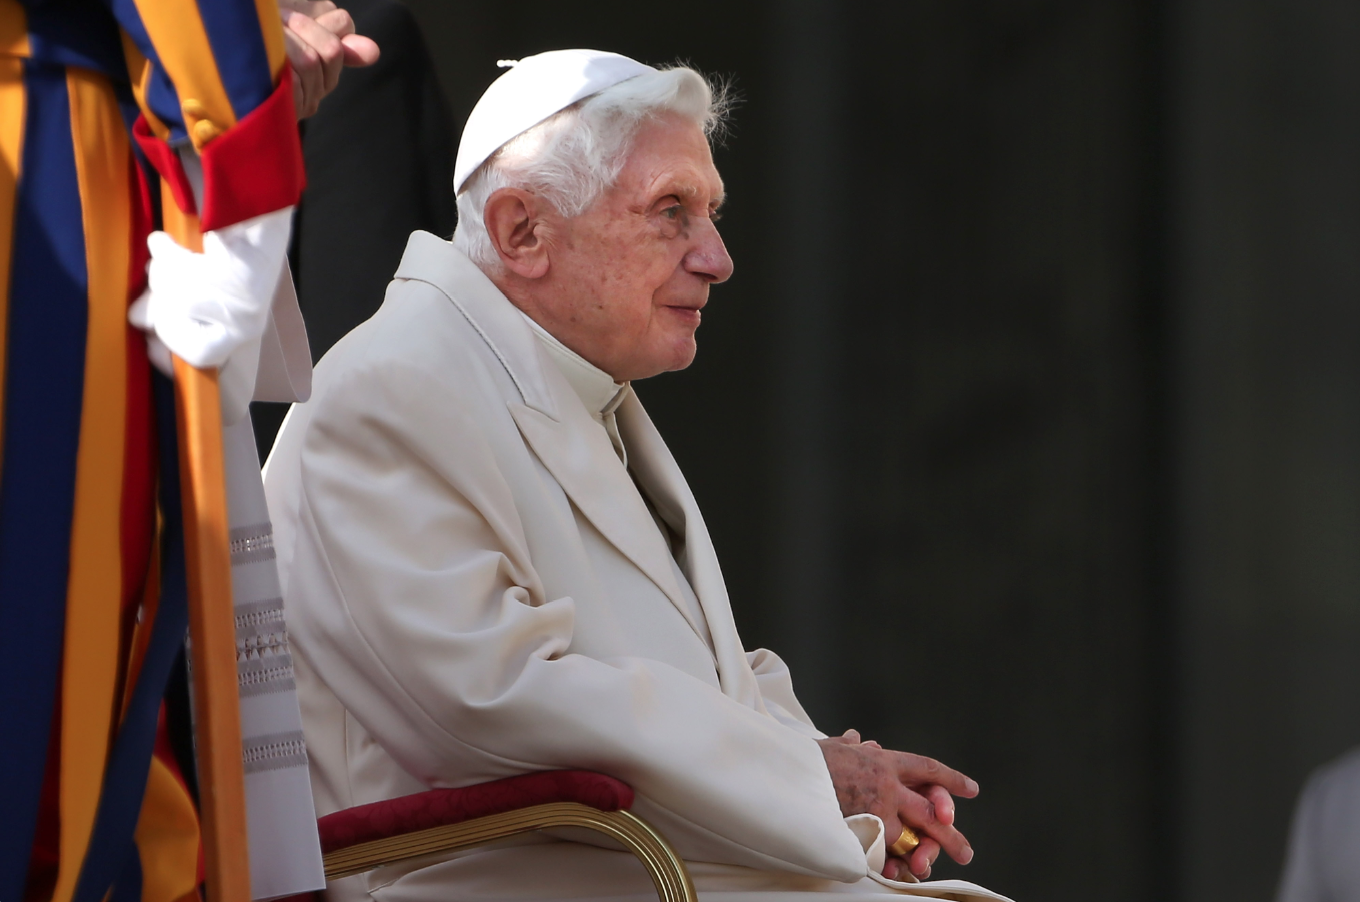 Benedict XVI 'very frail', claims biographer